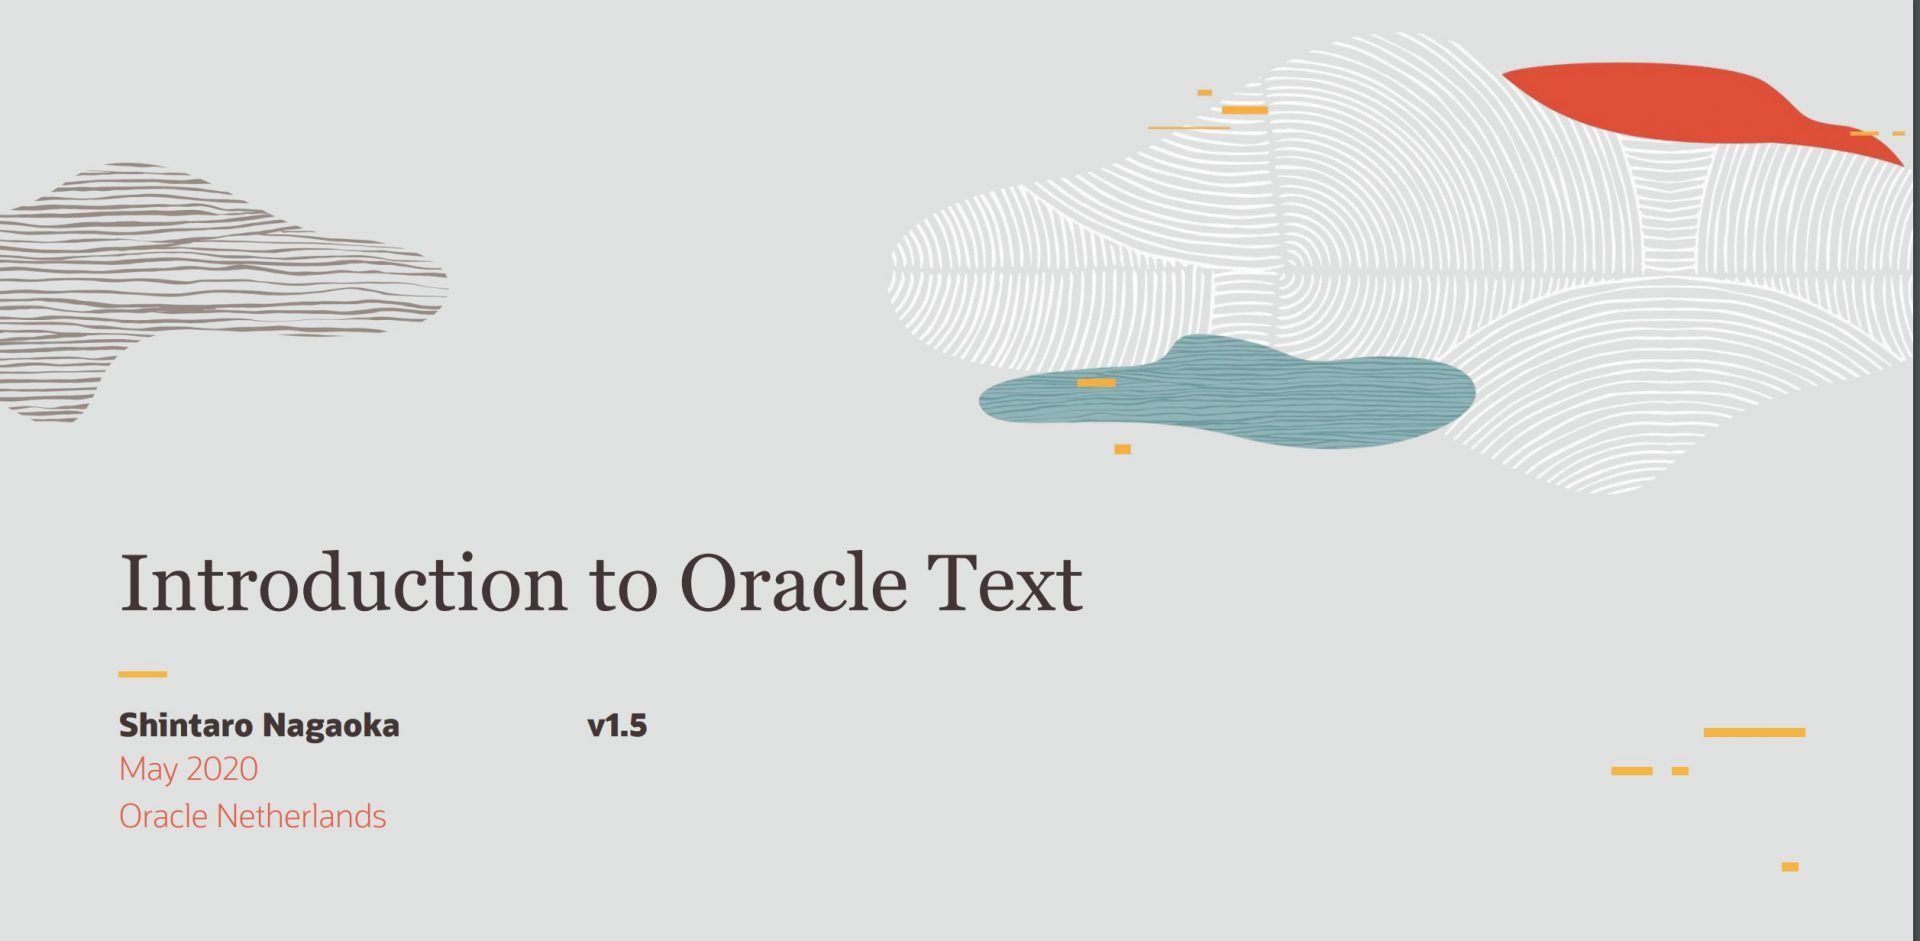 Met Oracle Text zoeken en analyseren in teksten en documenten